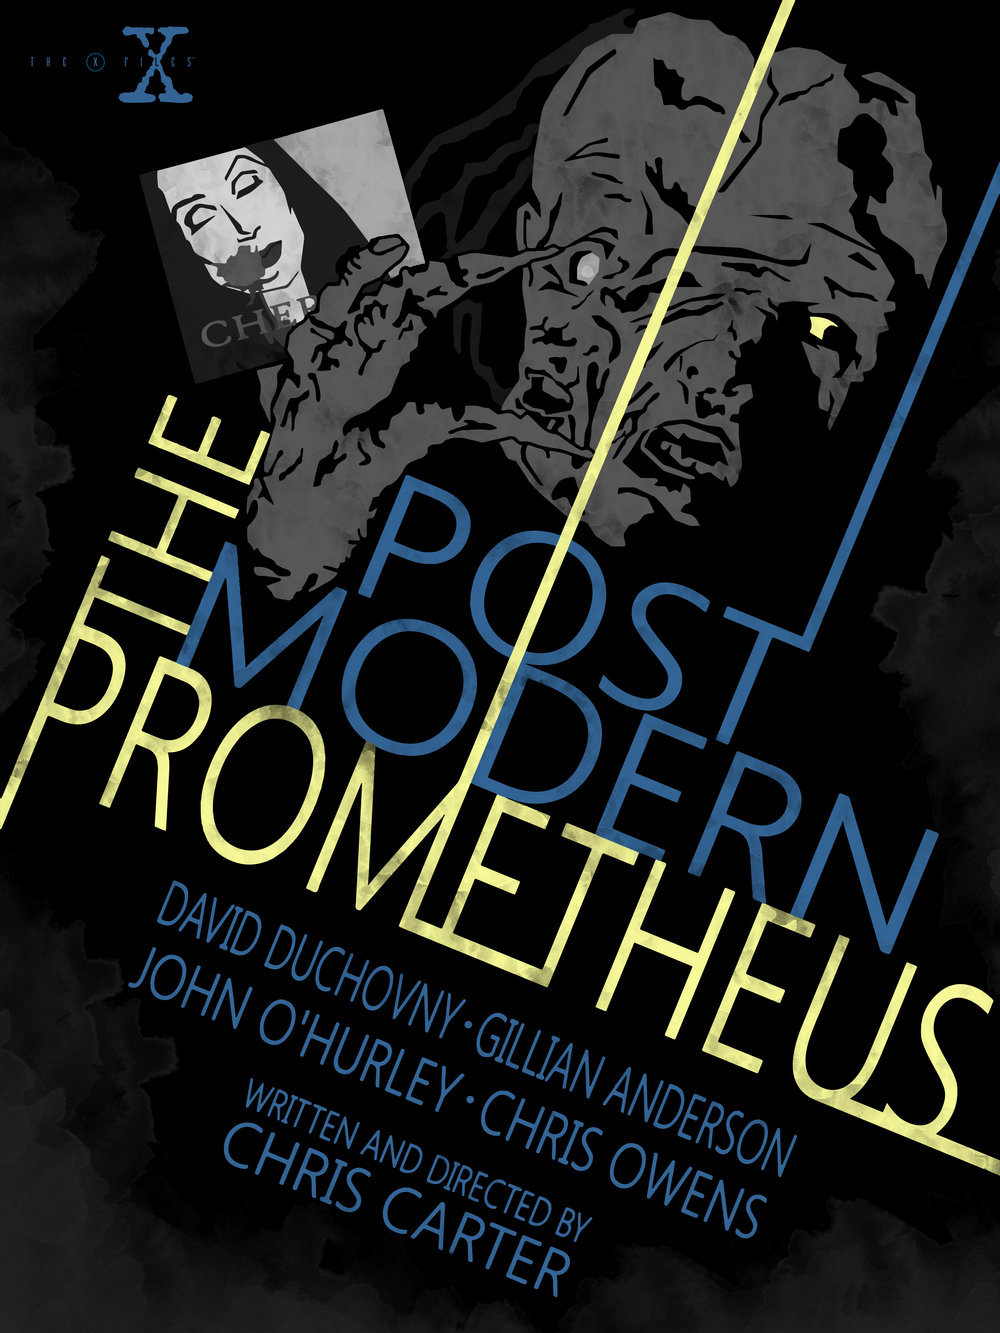 The Post-Modern Prometheus